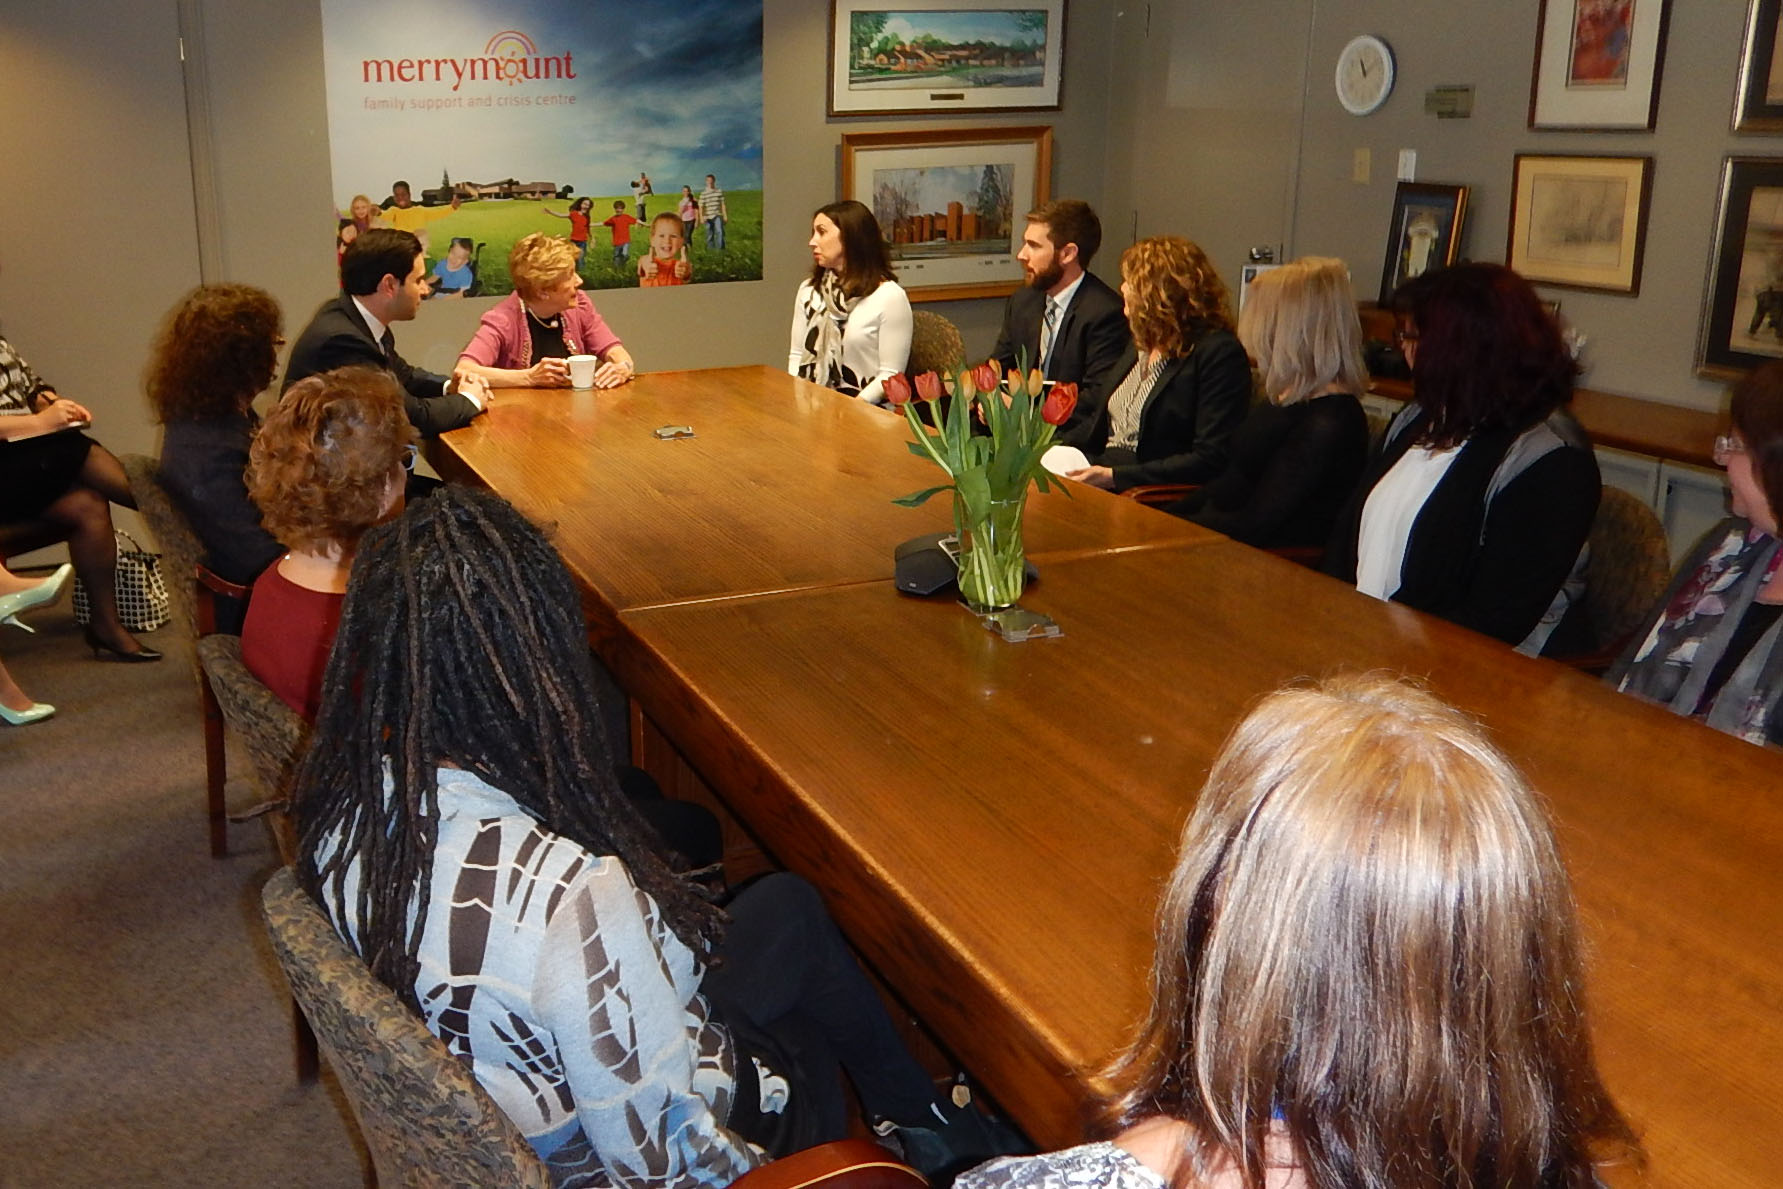 For her part, Mrs. Johnston visited the Merrymount Family Support and Crisis Centre to meet with its leadership team and patrons to better understand the ways the organization helps families and children in crisis.